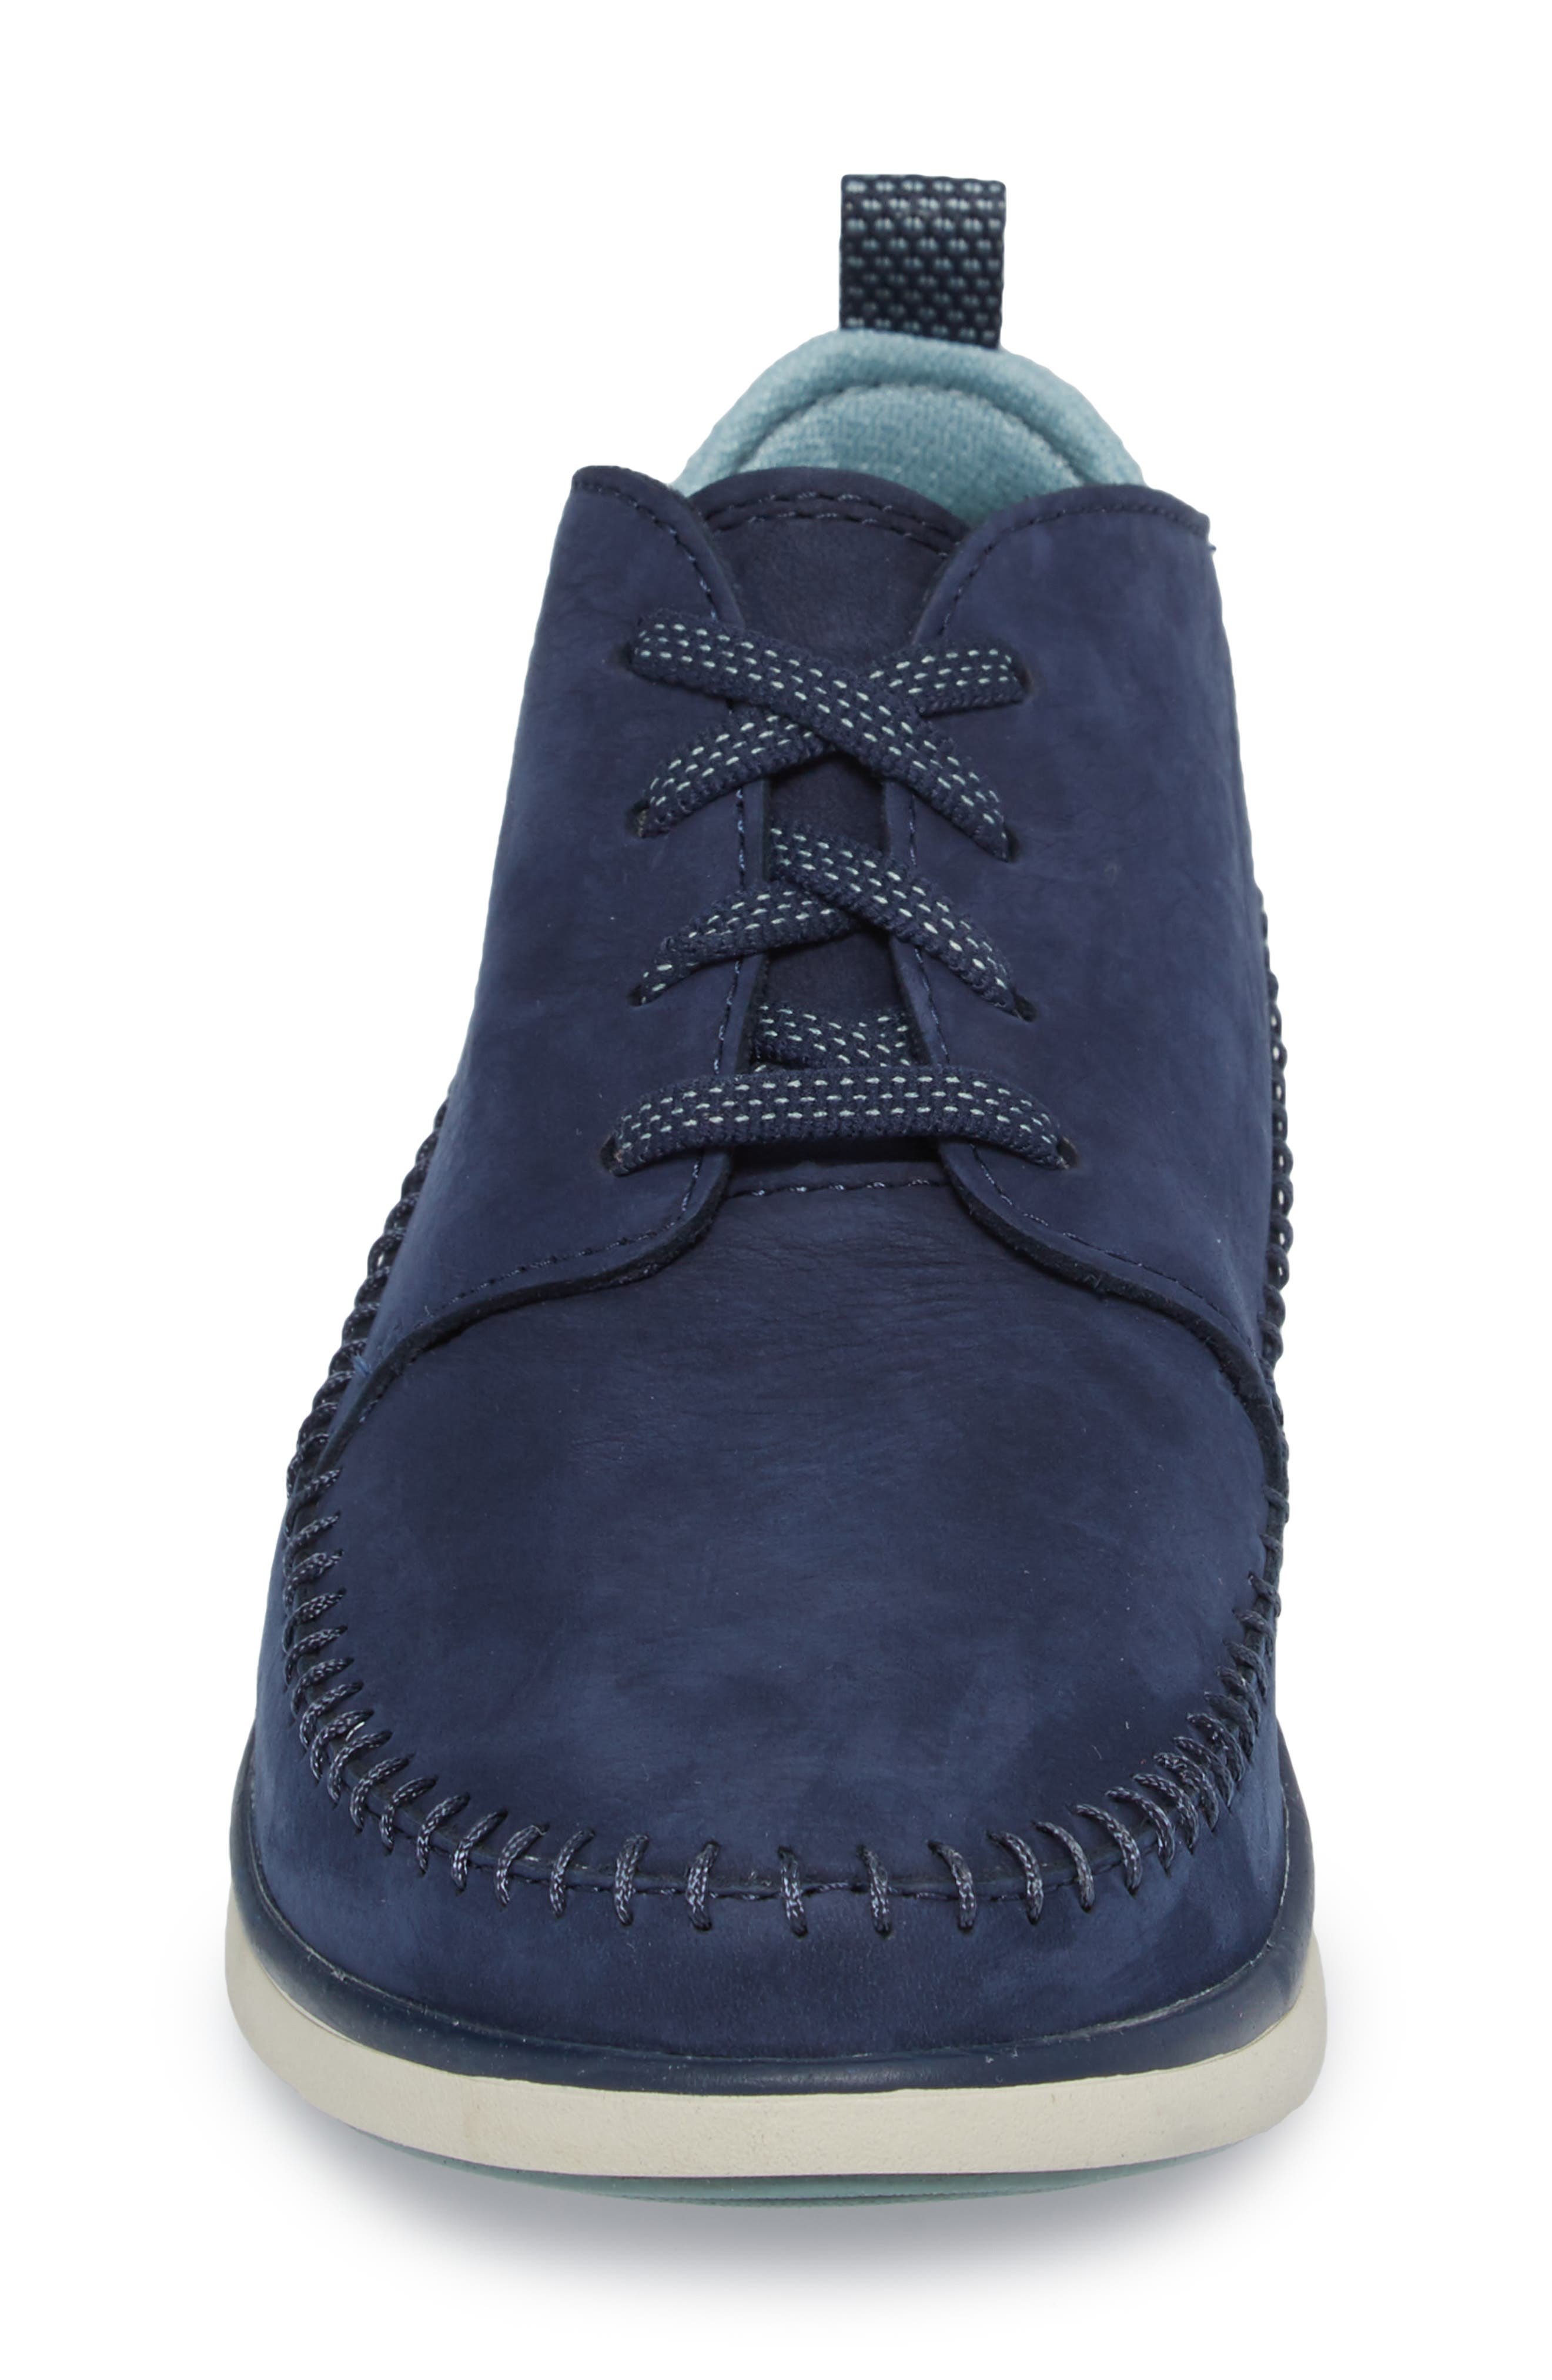 Olympia Lace-Up Sneaker,                             Alternate thumbnail 4, color,                             Blue Nubuck